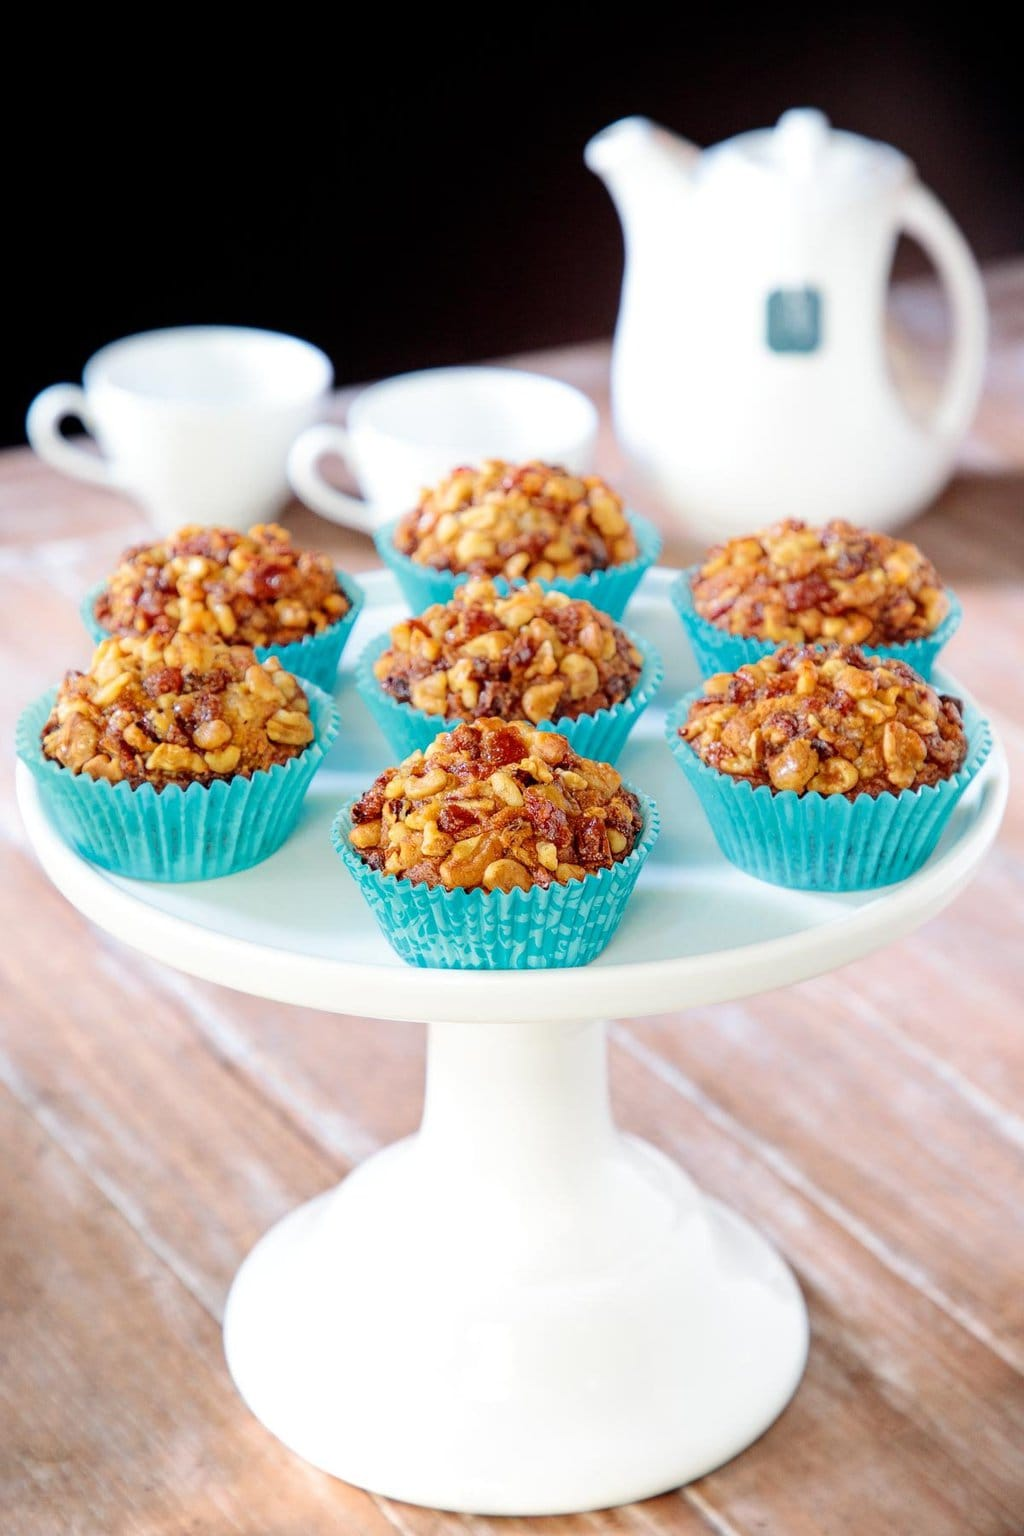 Vertical photo of a batch of Candied Walnut Date Banana Muffins in turquoise cupcake liners on a white pedestal serving plate.